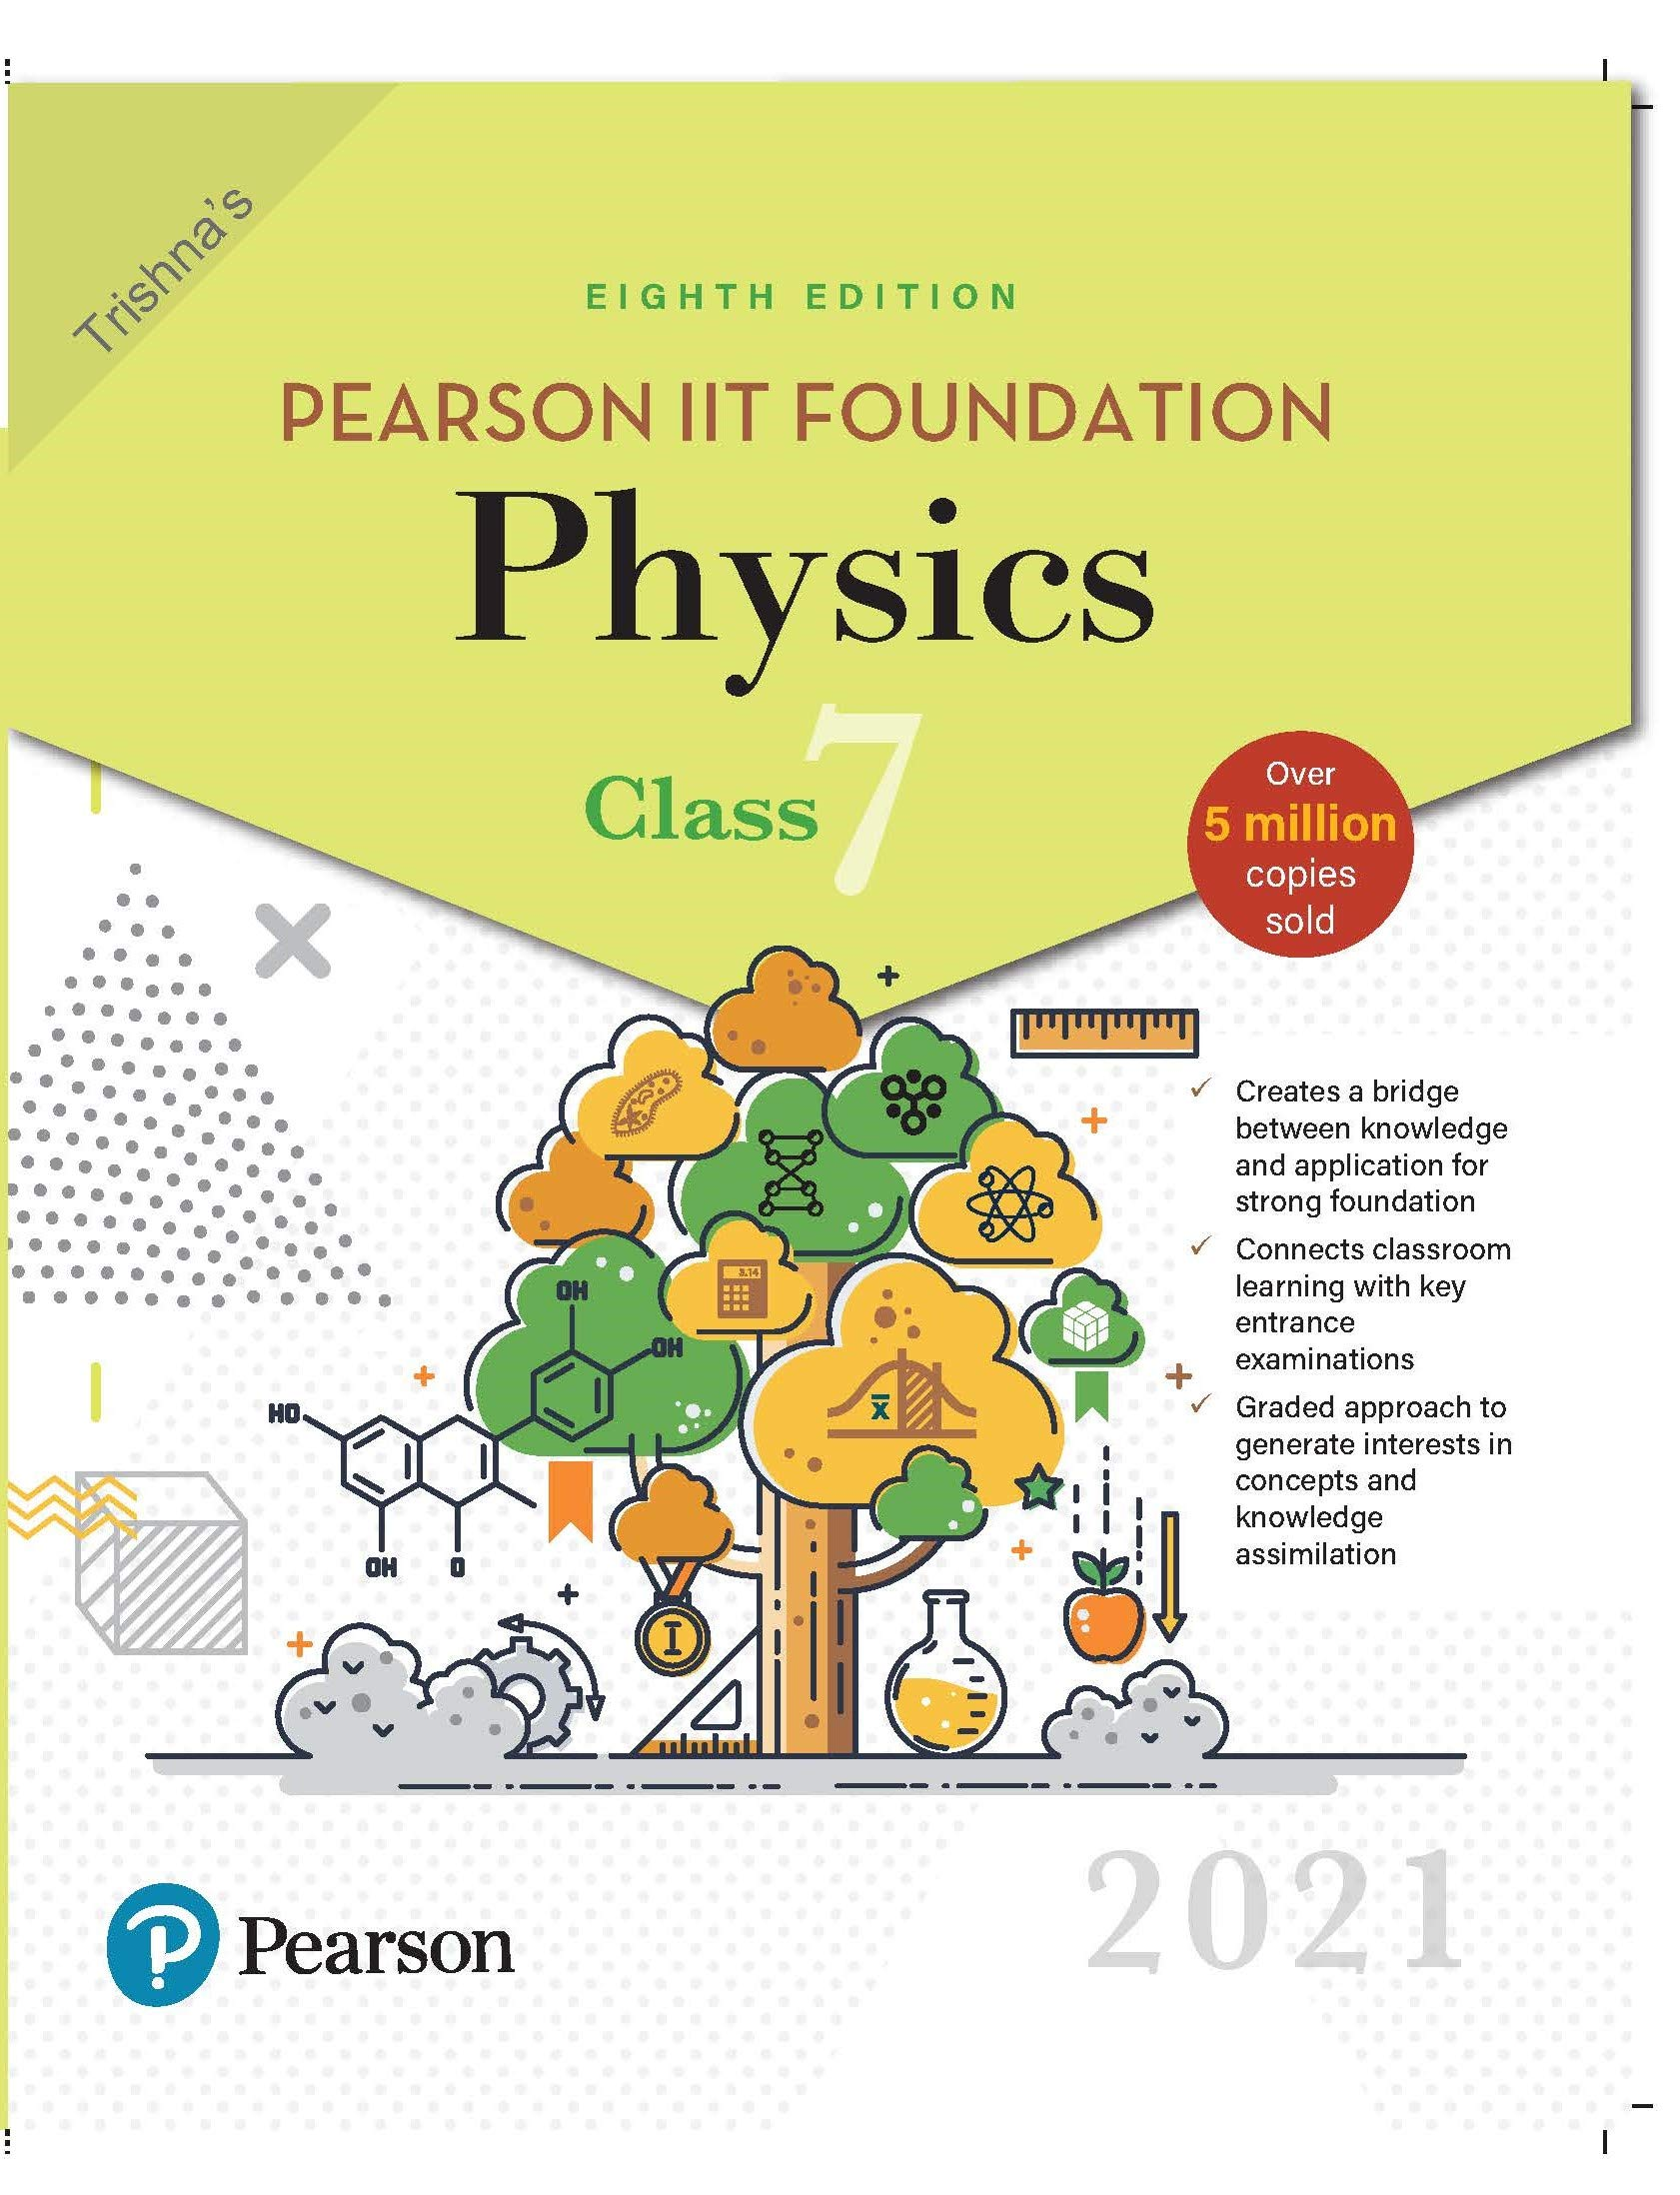 Pearson IIT Foundation Physics | Class 7 | 2021 Edition| By Pearson